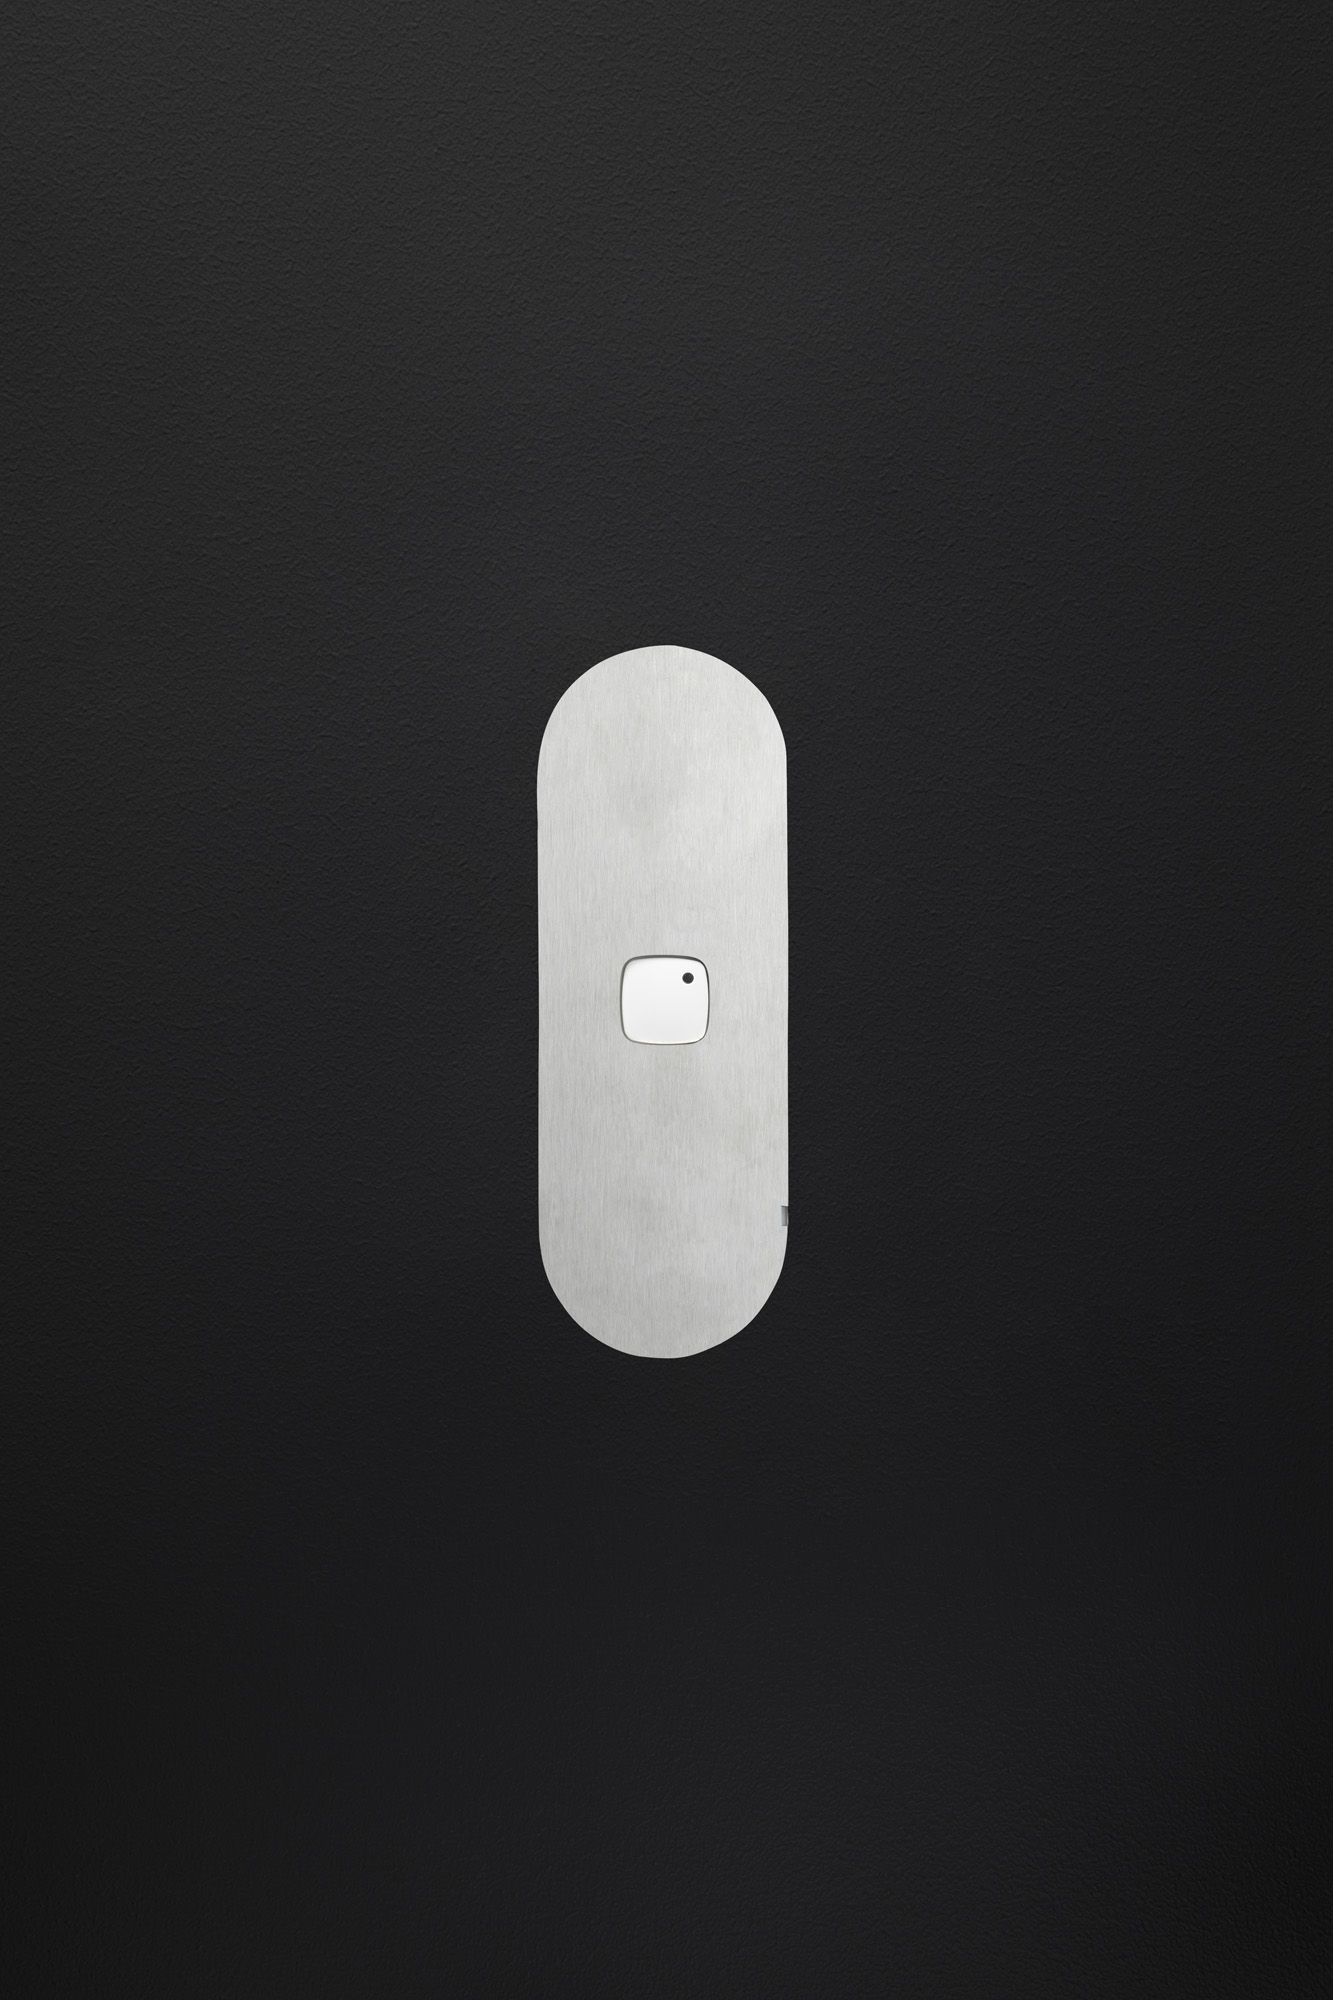 Single gang switch stainless steel white button black board